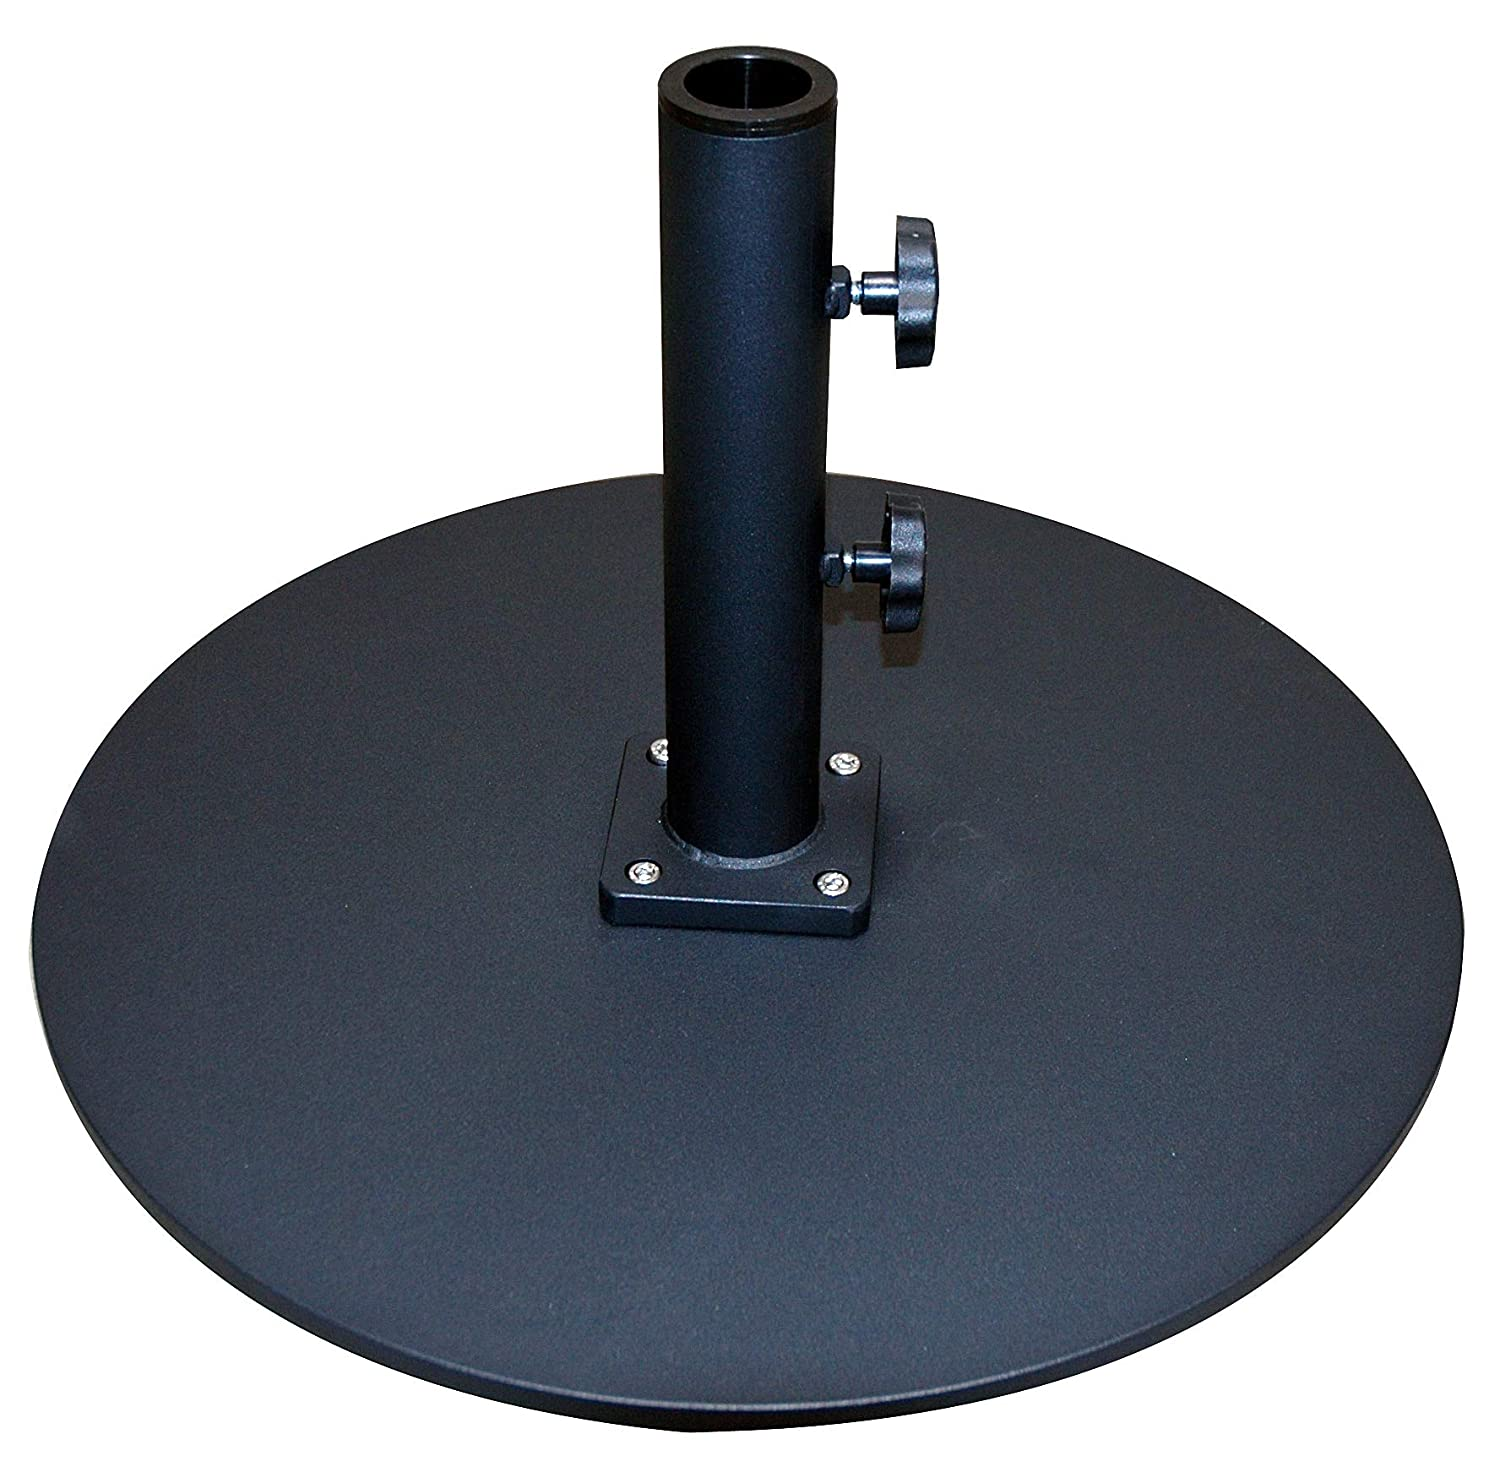 Tropishade Commercial Grade Steel Plate Umbrella Base, Black, 50 lbs